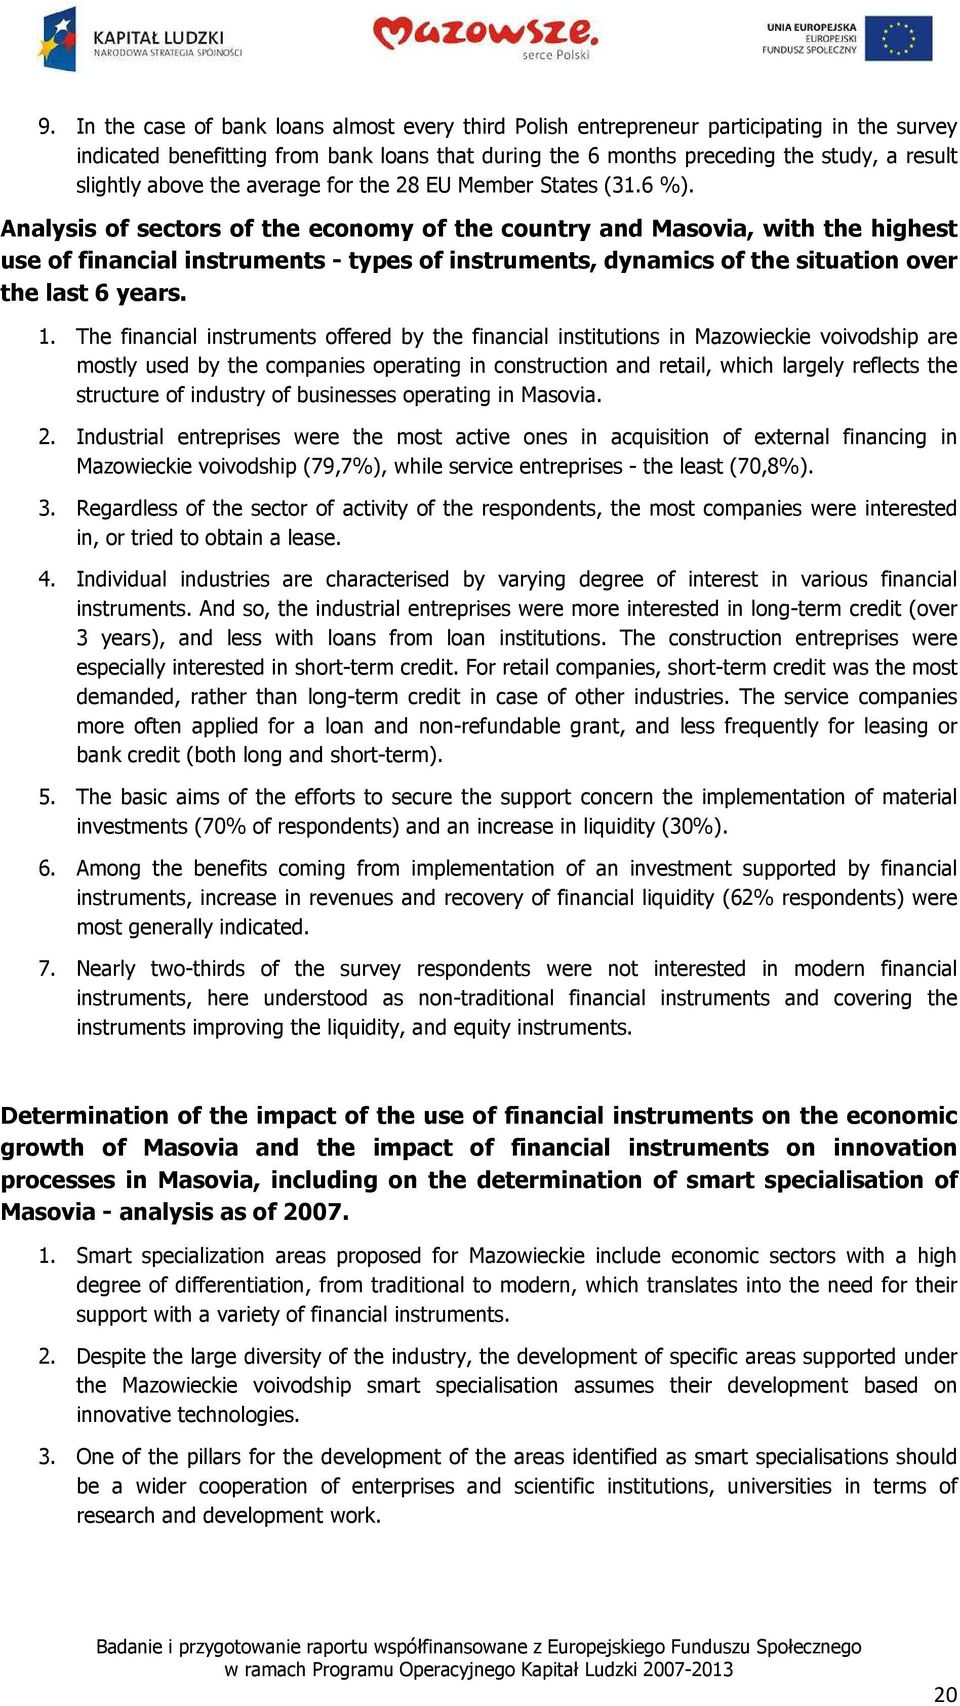 Analysis of sectors of the economy of the country and Masovia, with the highest use of financial instruments - types of instruments, dynamics of the situation over the last 6 years. 1.